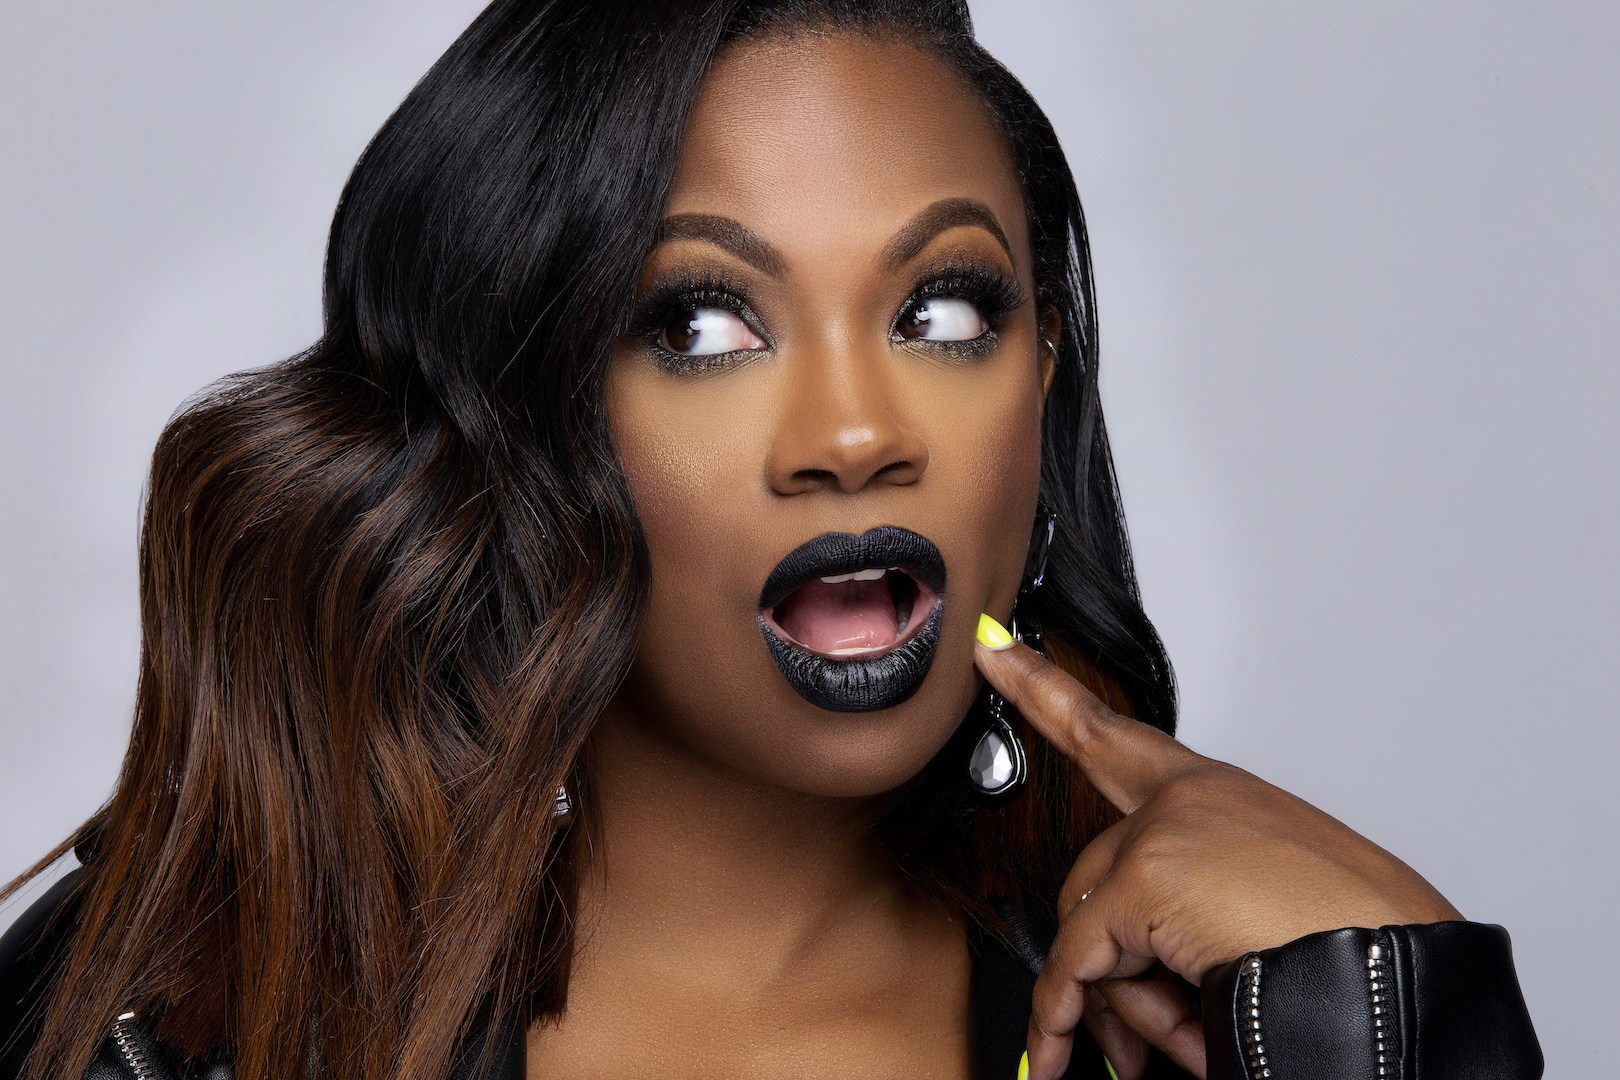 Kandi Burruss' Fans Love That She Knows How To Make Fun Of Herself - Check Out Her Latest Photo